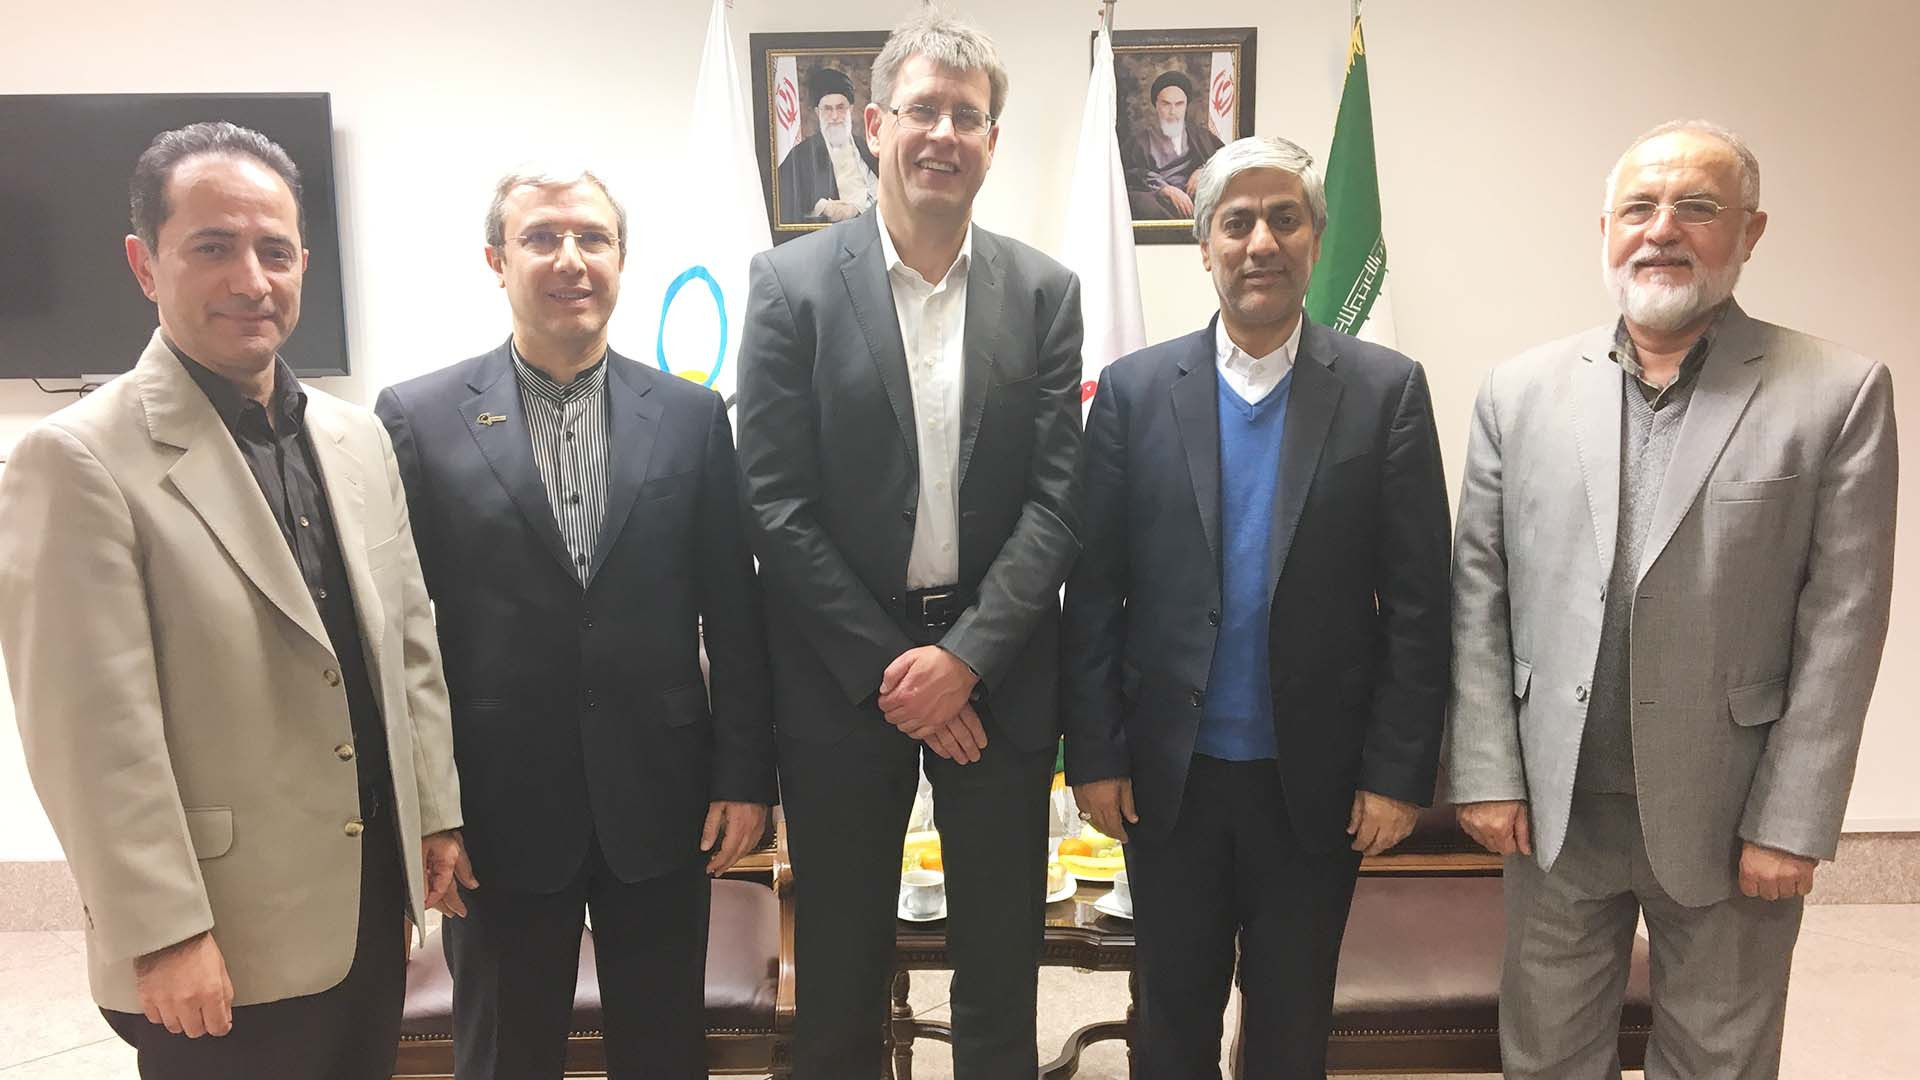 Shahrokh Shahnazi, right, has met several leading officials as secretary general of the National Olympic Committee of the Islamic Republic of Iran, including ITTF President Thomas Weikert ©ITTF